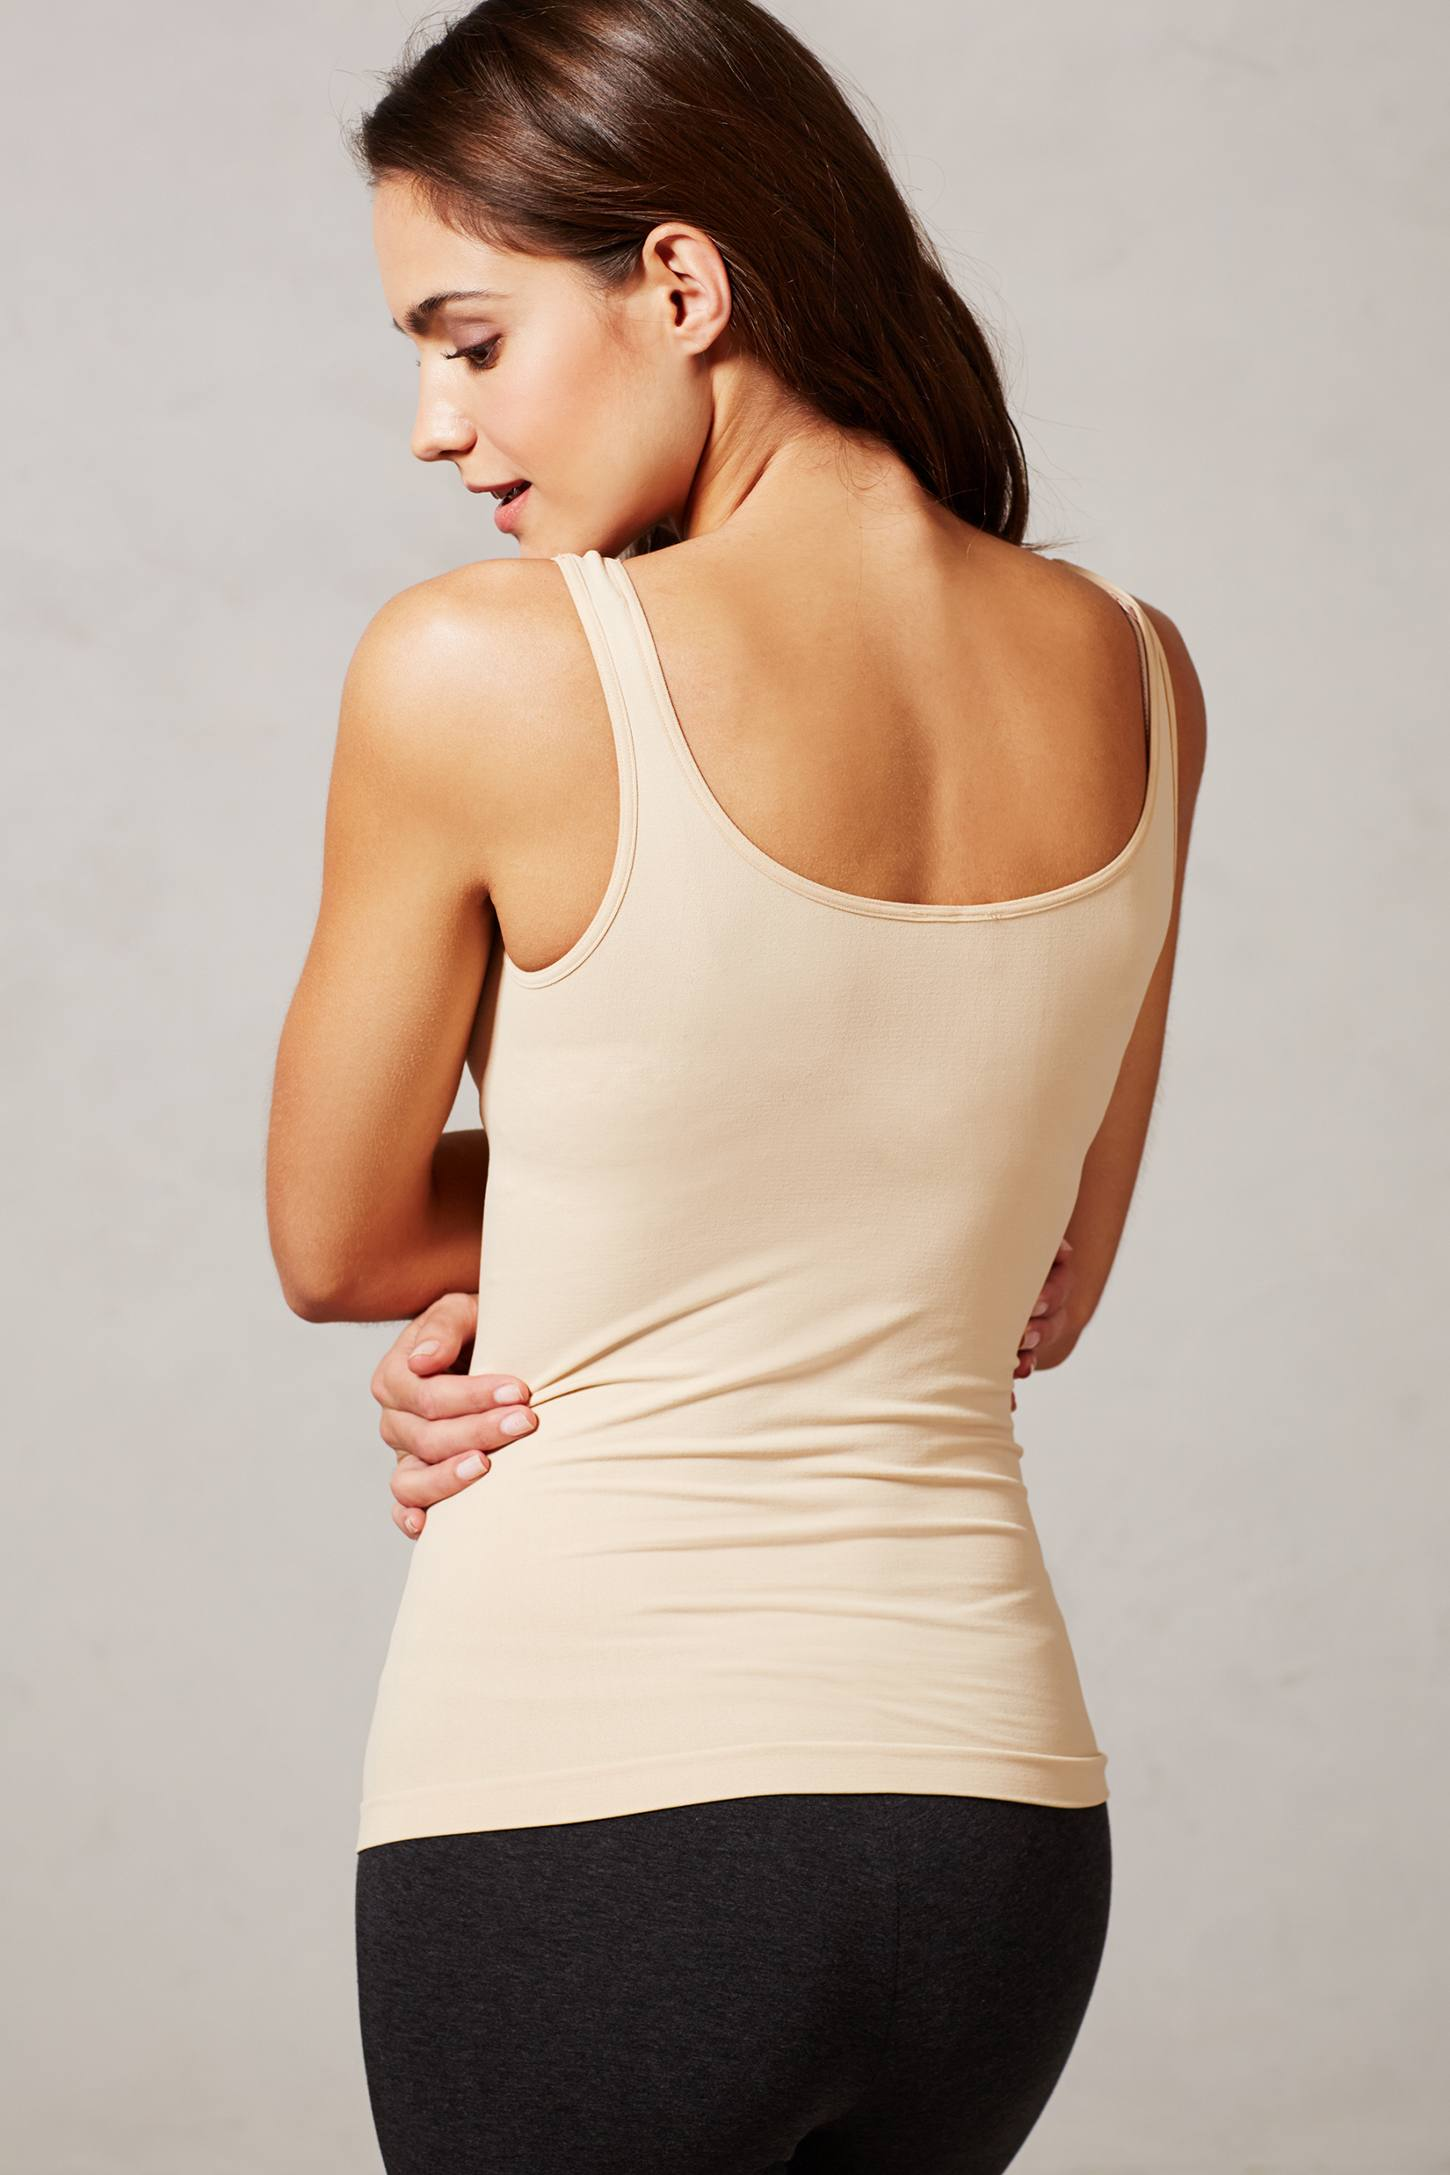 Slide View: 3: Reversible Seamless Tank